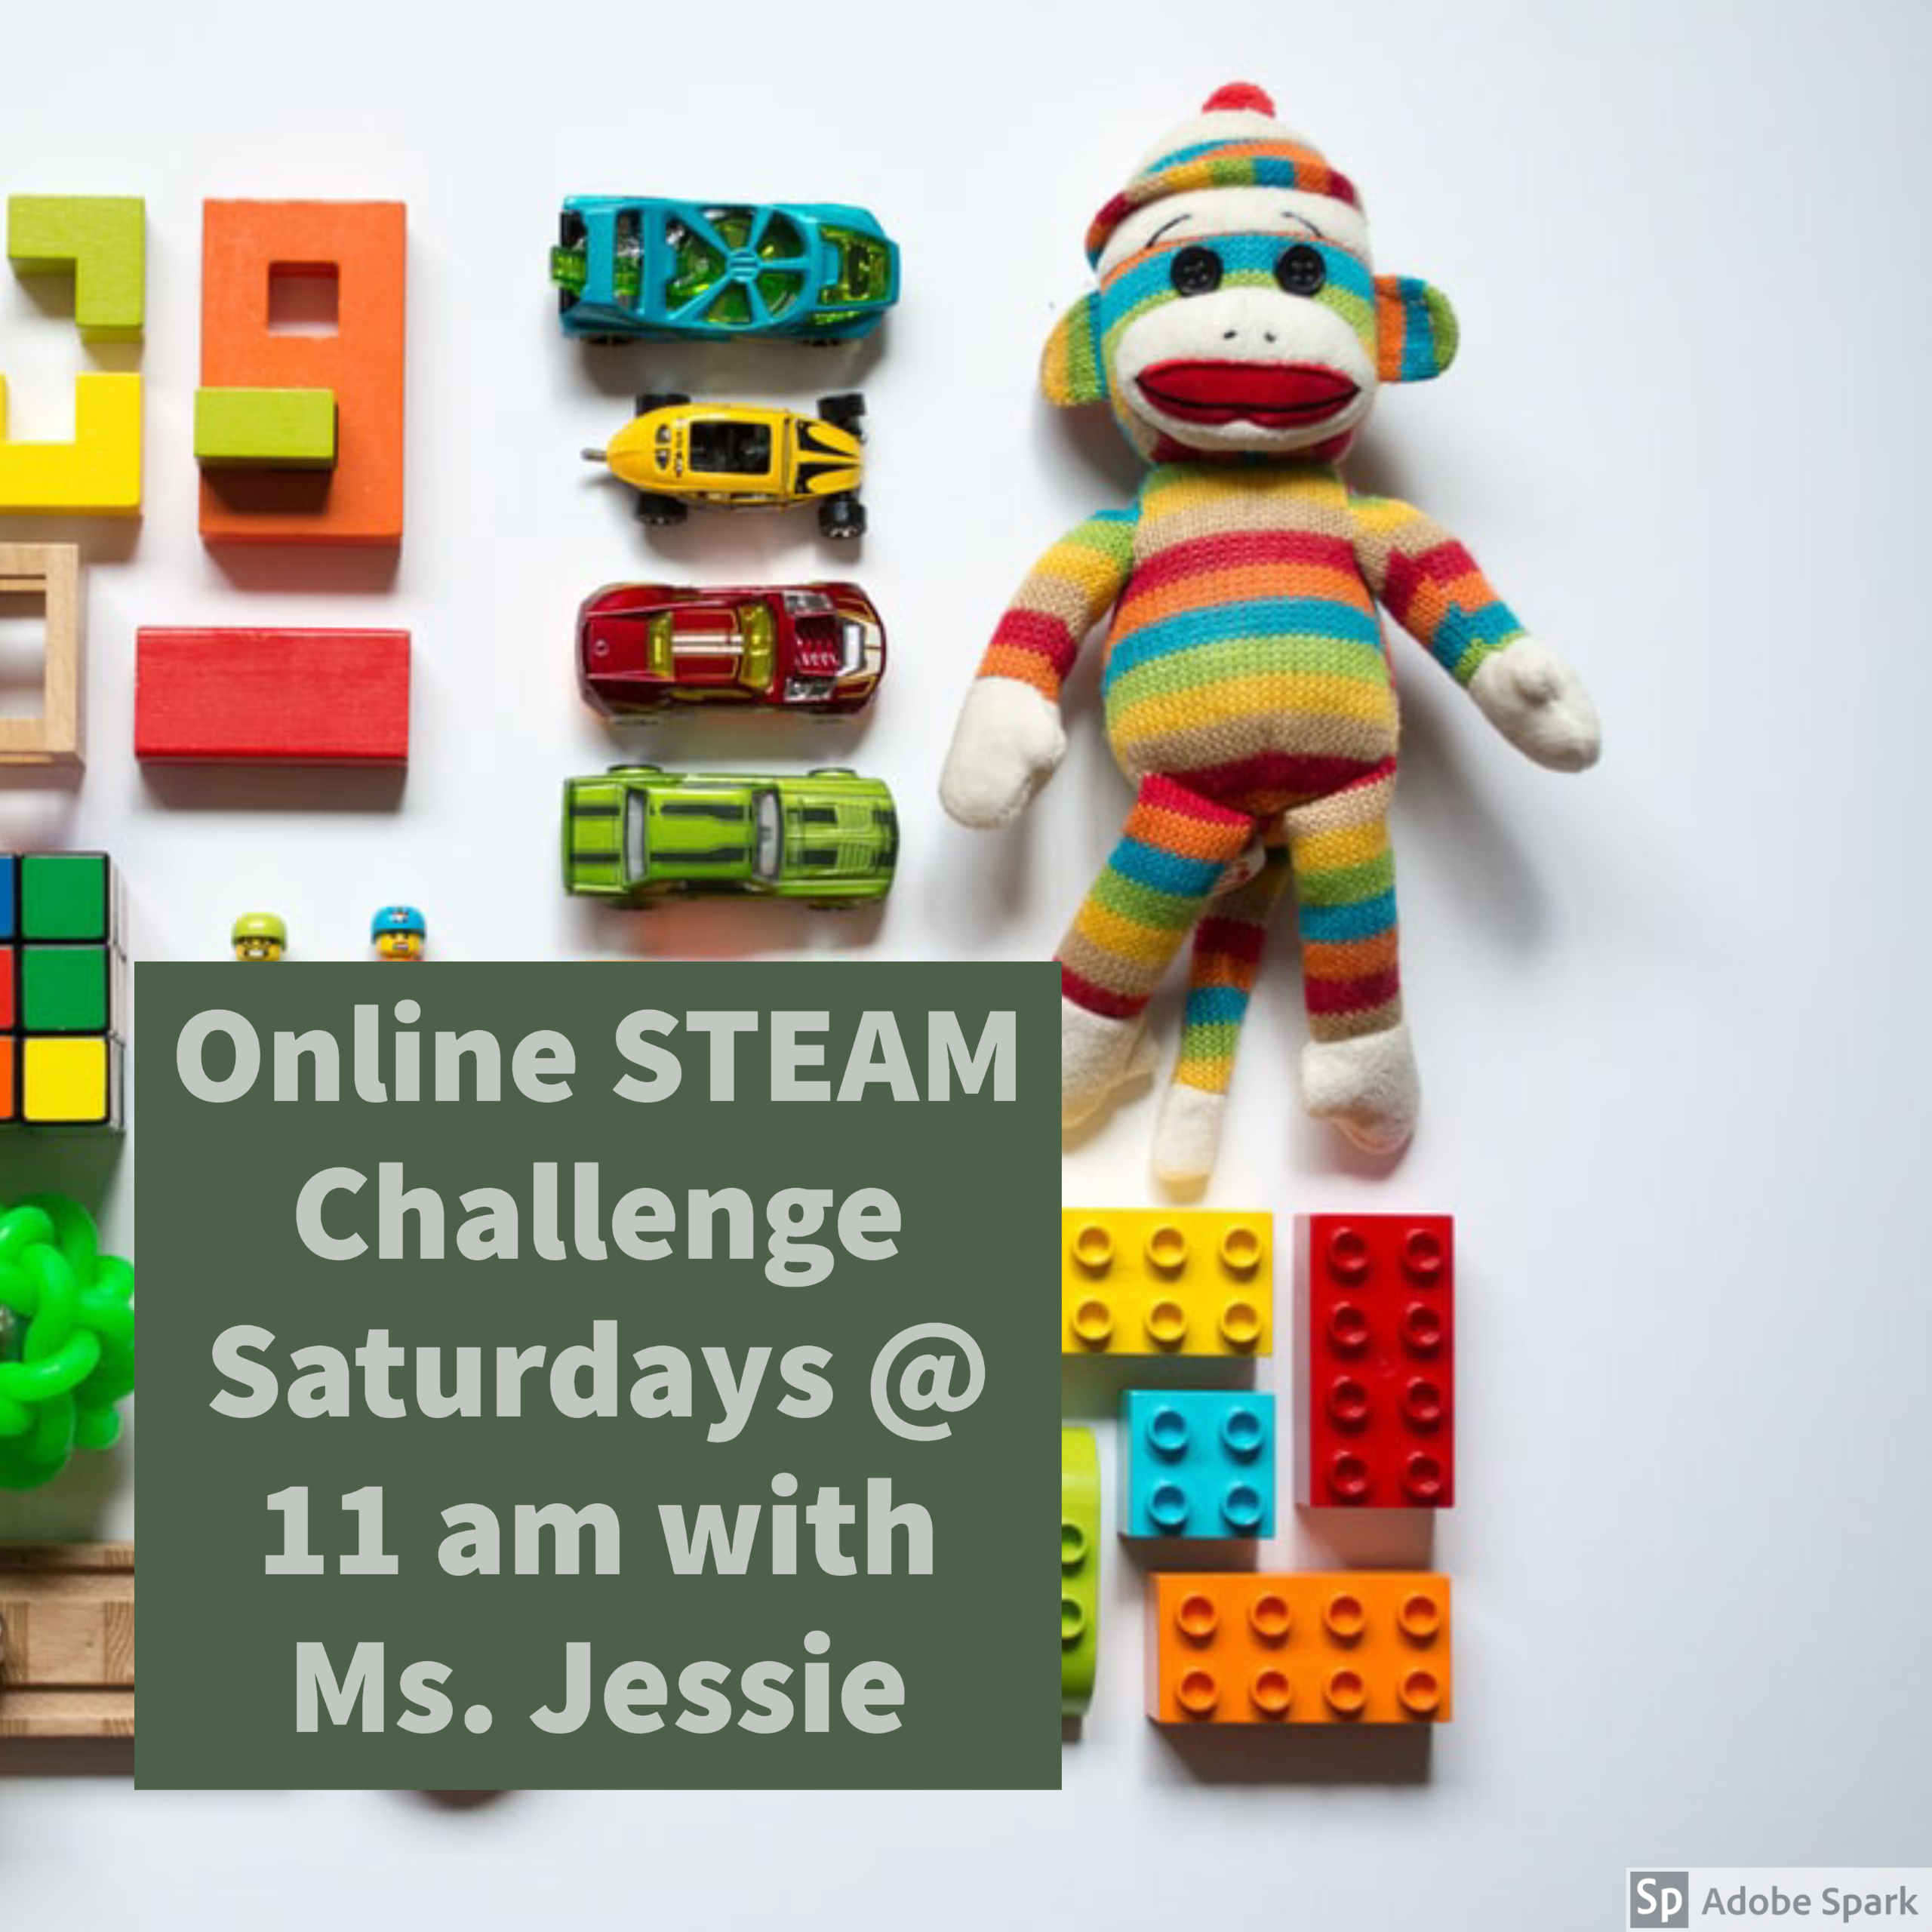 Virtual (online) STEAM Challenge with Ms. Jessie @ Central Library